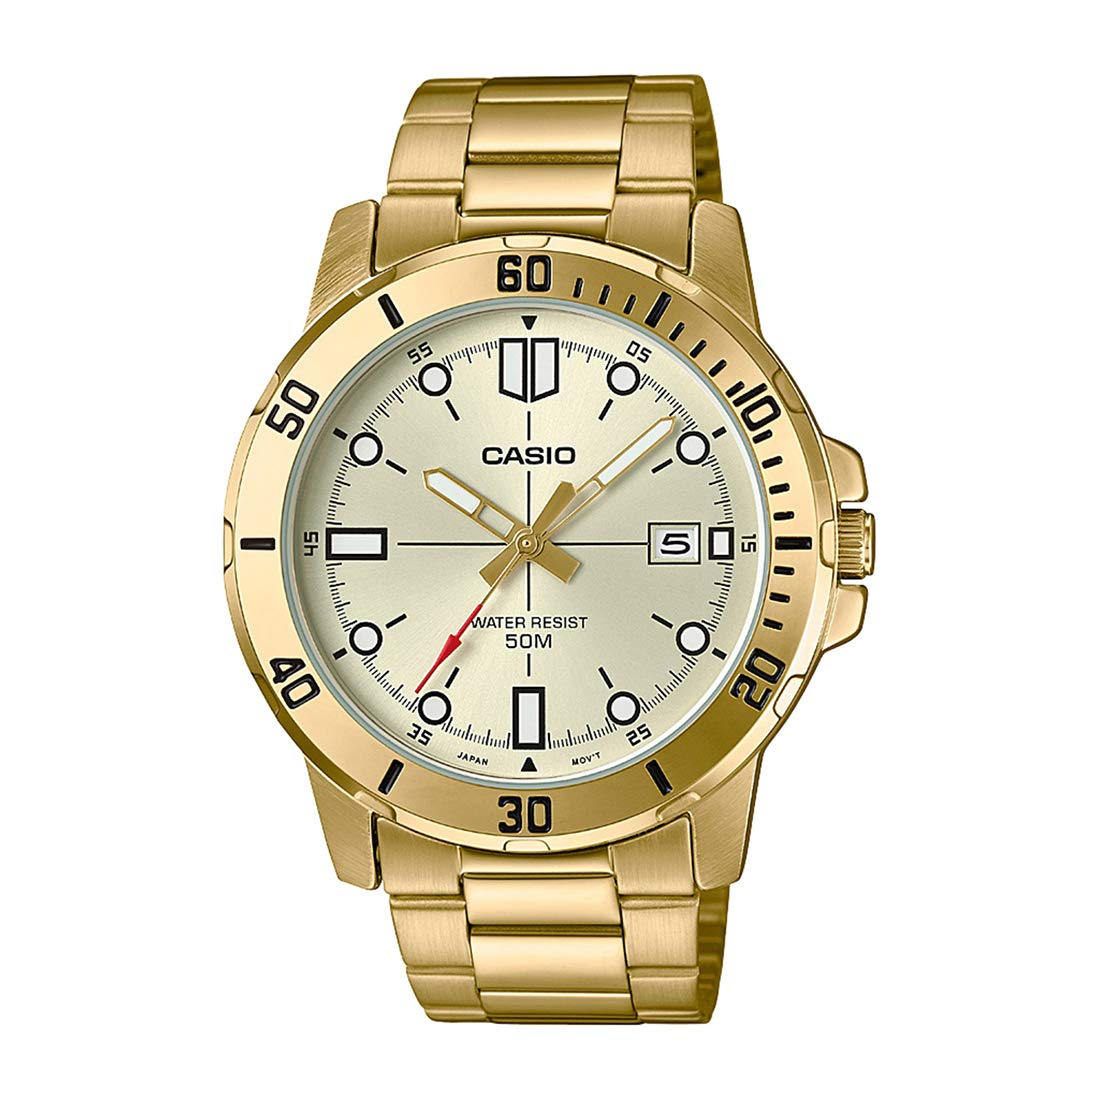 Casio MTP-VD01G-9EV Men s Enticer Gold Tone Stainless Steel Gold Dial Casual Analog Sporty Watch